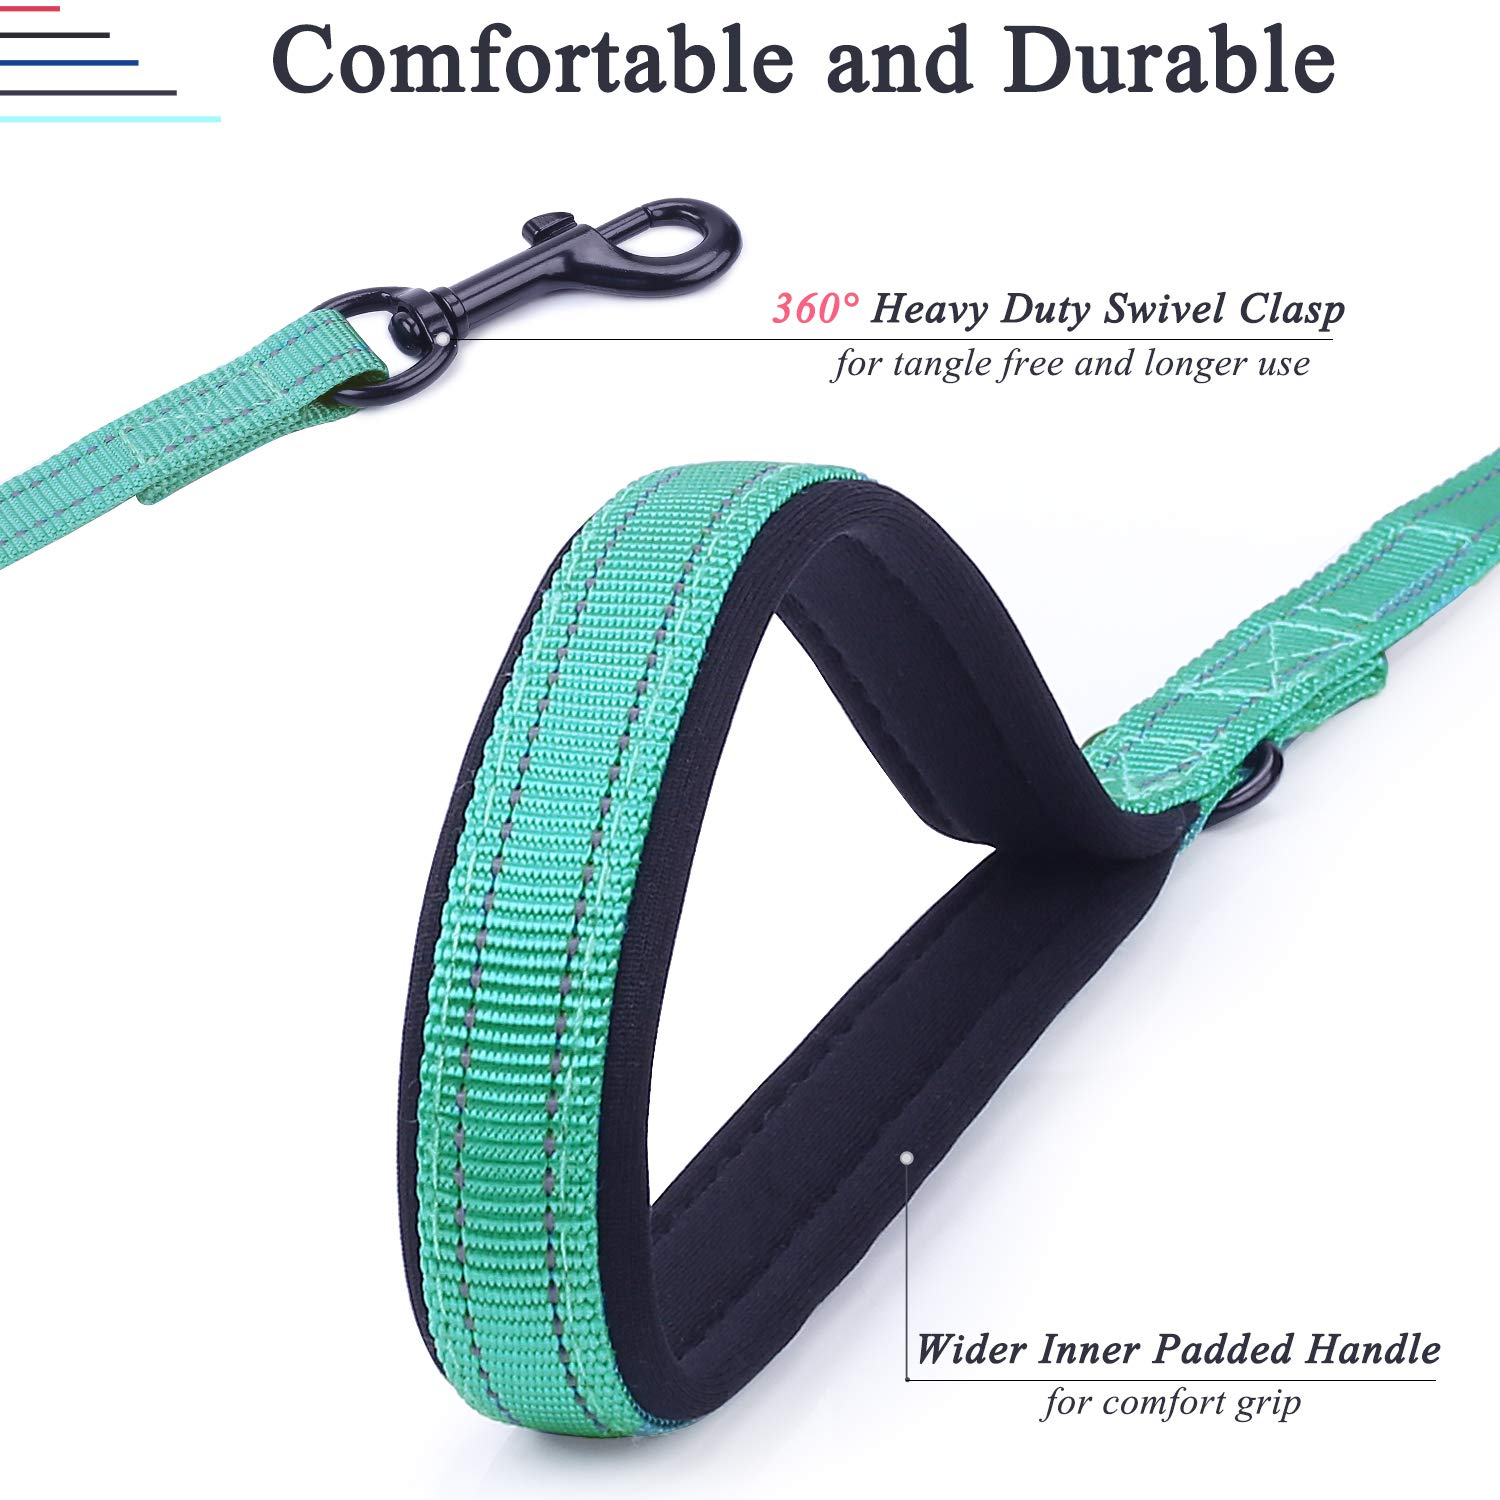 Heavy Duty 6ft Long Reflective Safety Walking Leash for Medium to Large Dogs Grey VIVAGLORY Dog Training Lead with 2 Padded Handles